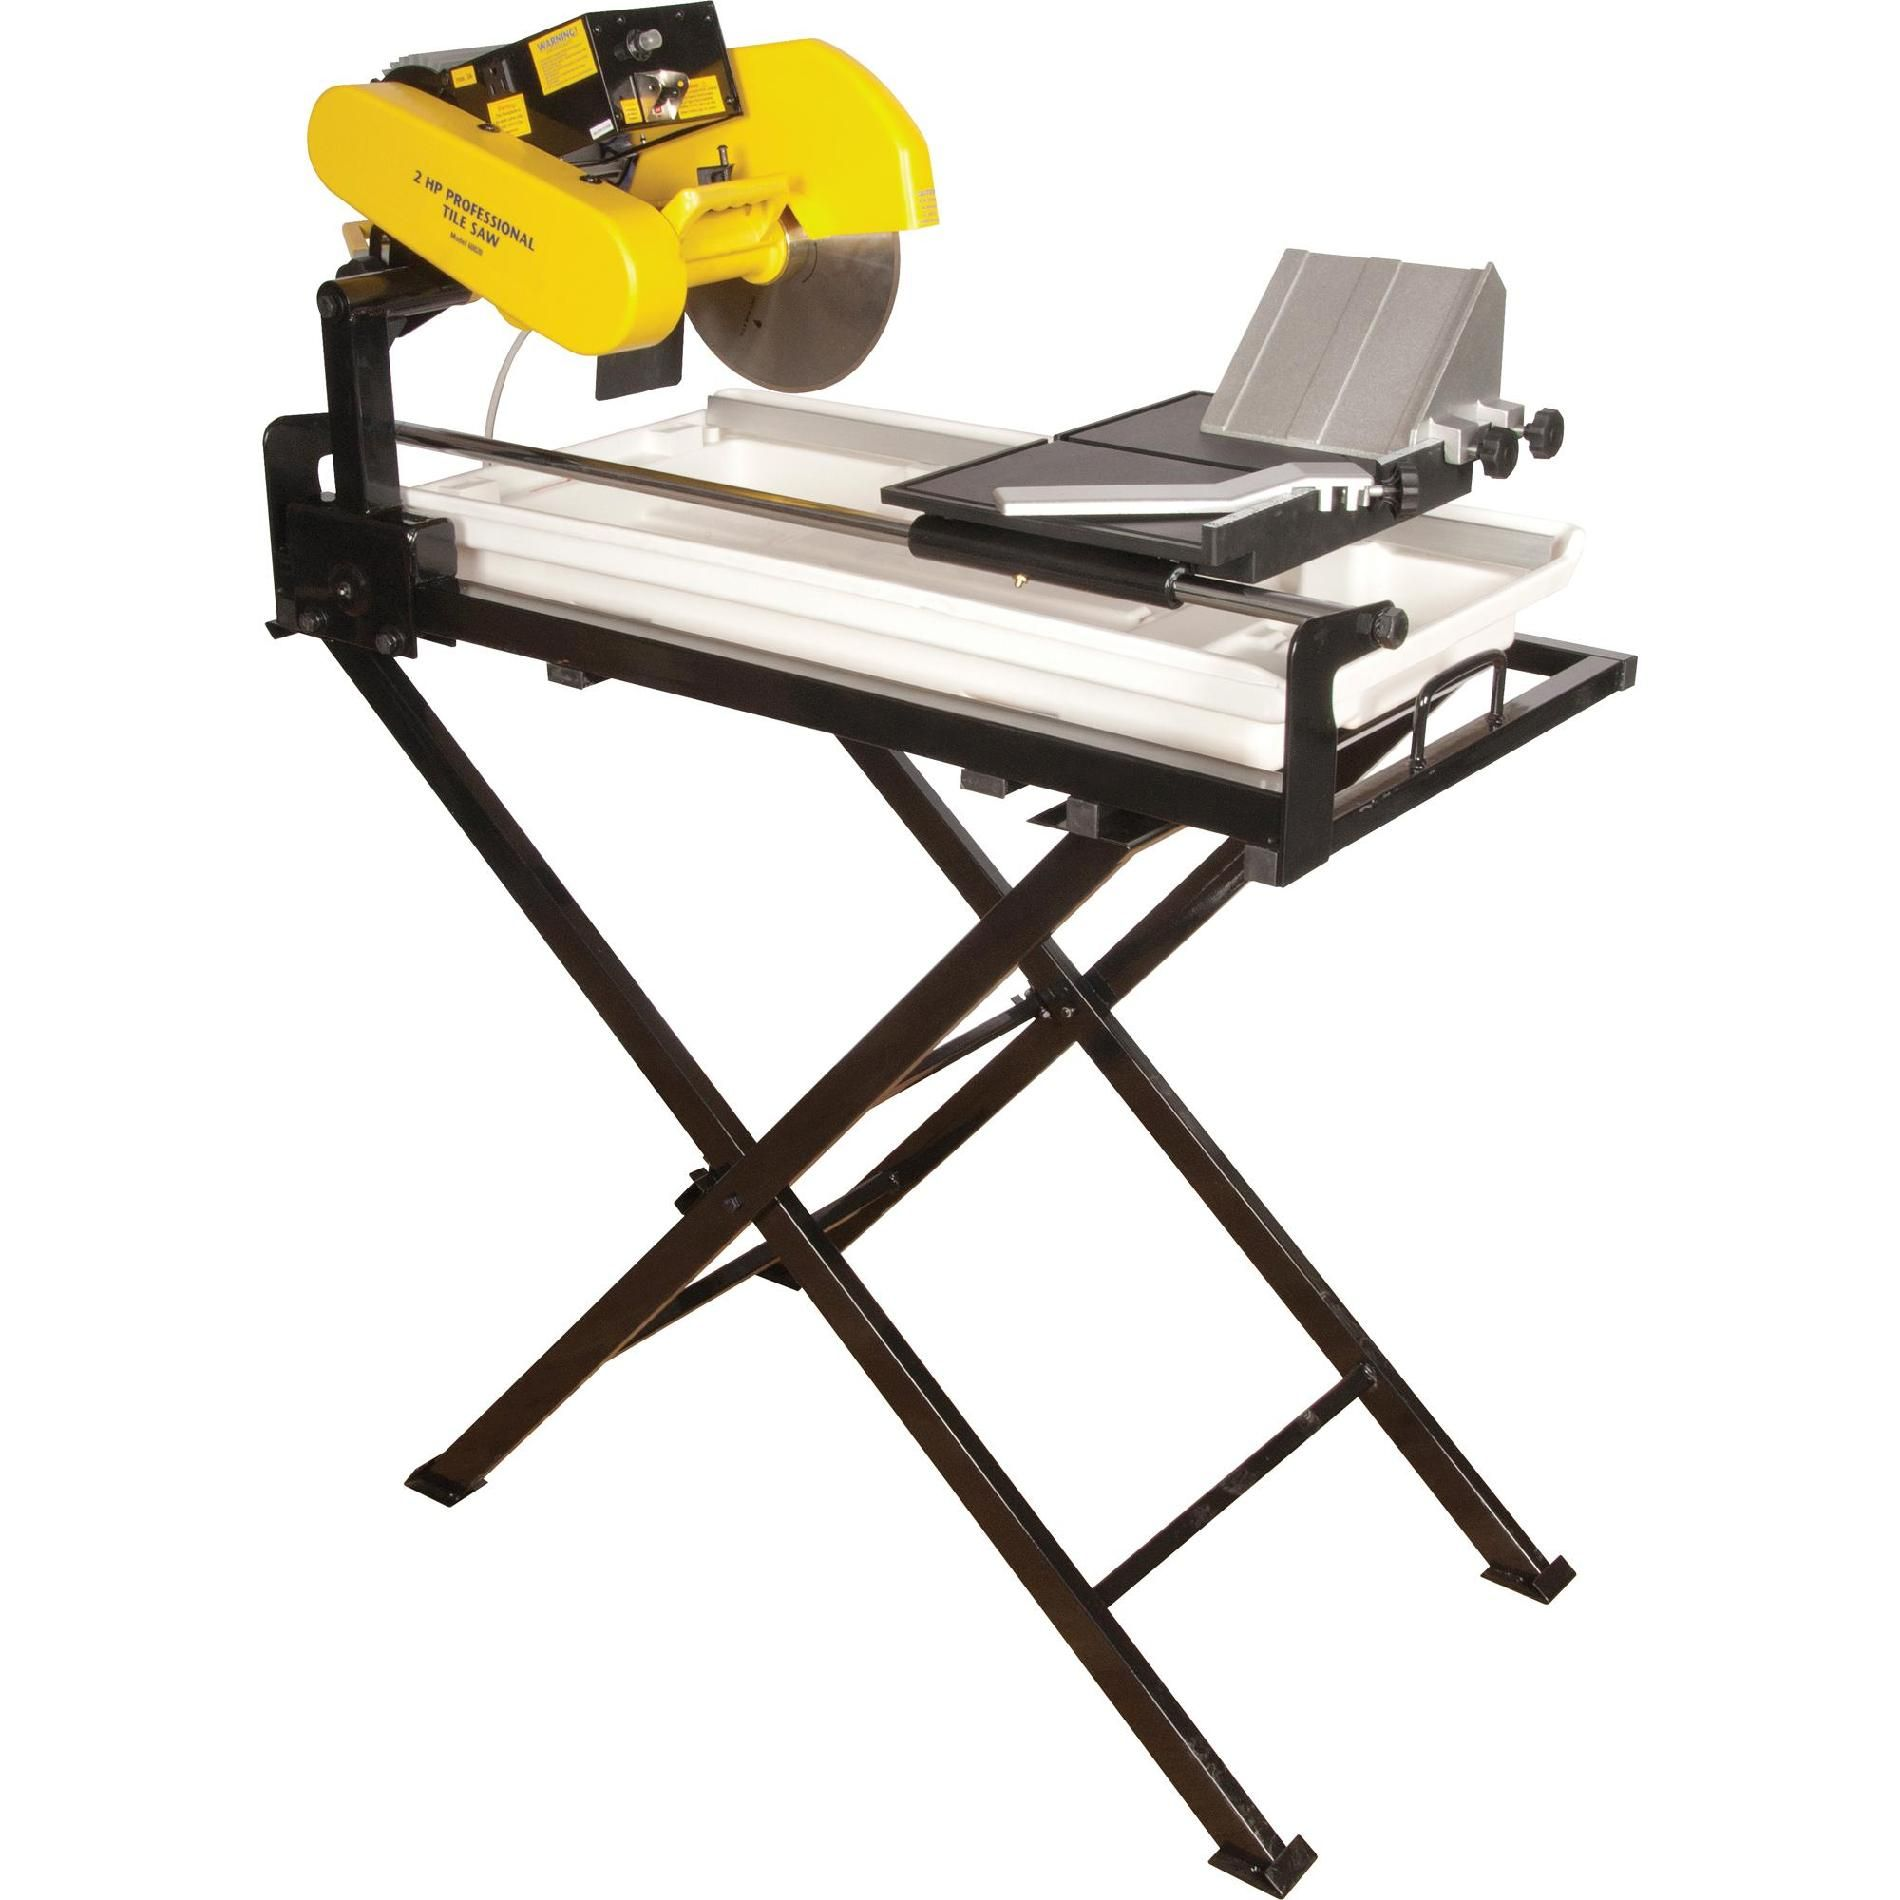 Using A Tile Saw To Slab Rock The Hand 2 Mouth Way Part 1 Tile Saw Small Workspace Lapidary Tools